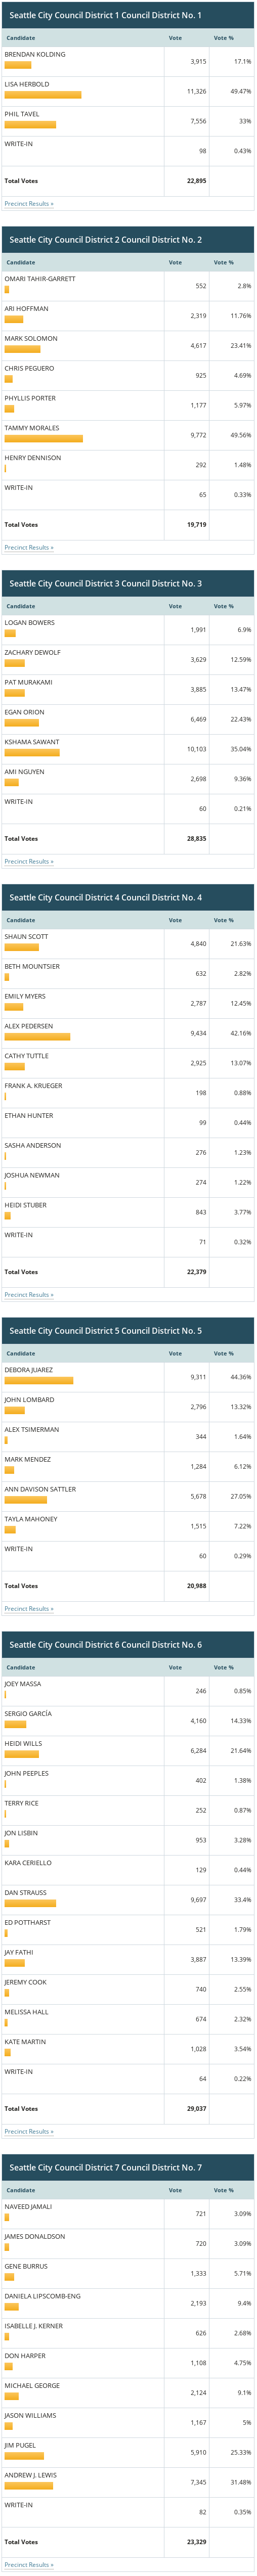 Screenshot of Seattle City Council primary results.